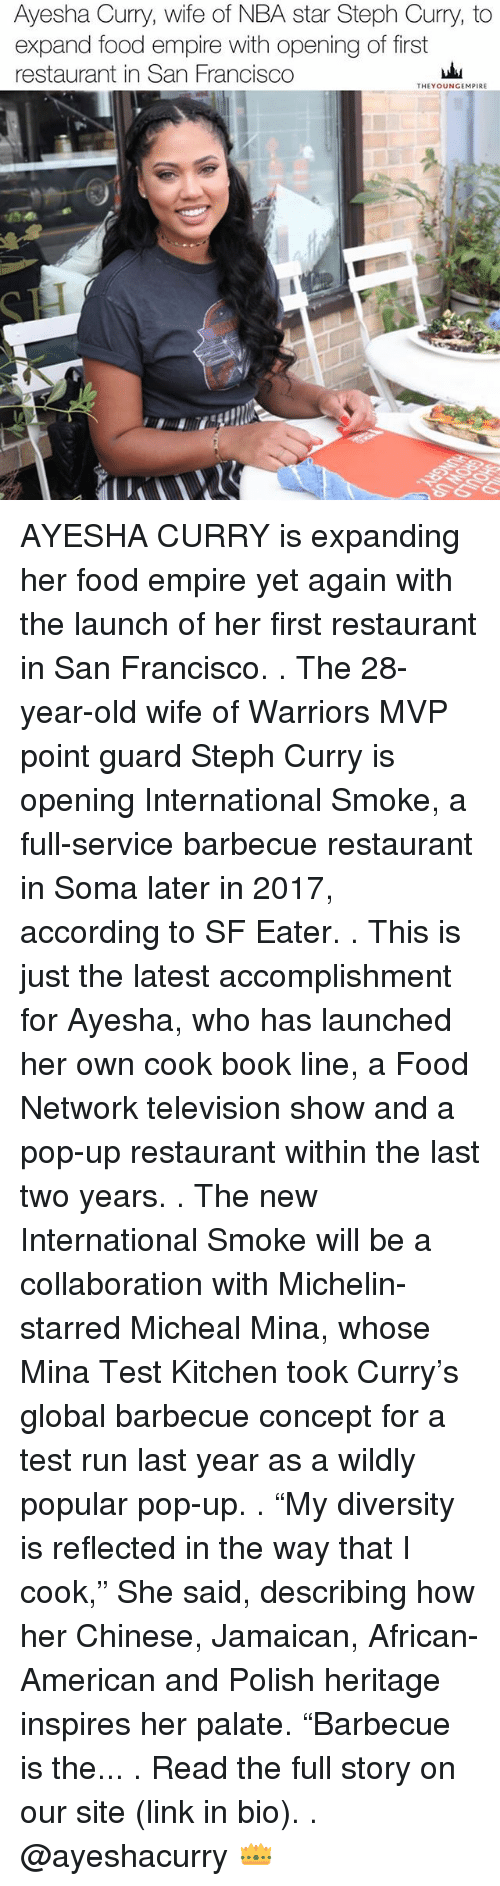 "Ayesha Curry: Ayesha Curry, wife of NBA star Steph Curry, to  expand food empire with opening of first  restaurant in San Francisco  THEY OUNGEMPIRE AYESHA CURRY is expanding her food empire yet again with the launch of her first restaurant in San Francisco. . The 28-year-old wife of Warriors MVP point guard Steph Curry is opening International Smoke, a full-service barbecue restaurant in Soma later in 2017, according to SF Eater. . This is just the latest accomplishment for Ayesha, who has launched her own cook book line, a Food Network television show and a pop-up restaurant within the last two years. . The new International Smoke will be a collaboration with Michelin-starred Micheal Mina, whose Mina Test Kitchen took Curry's global barbecue concept for a test run last year as a wildly popular pop-up. . ""My diversity is reflected in the way that I cook,"" She said, describing how her Chinese, Jamaican, African-American and Polish heritage inspires her palate. ""Barbecue is the... . Read the full story on our site (link in bio). . @ayeshacurry 👑"